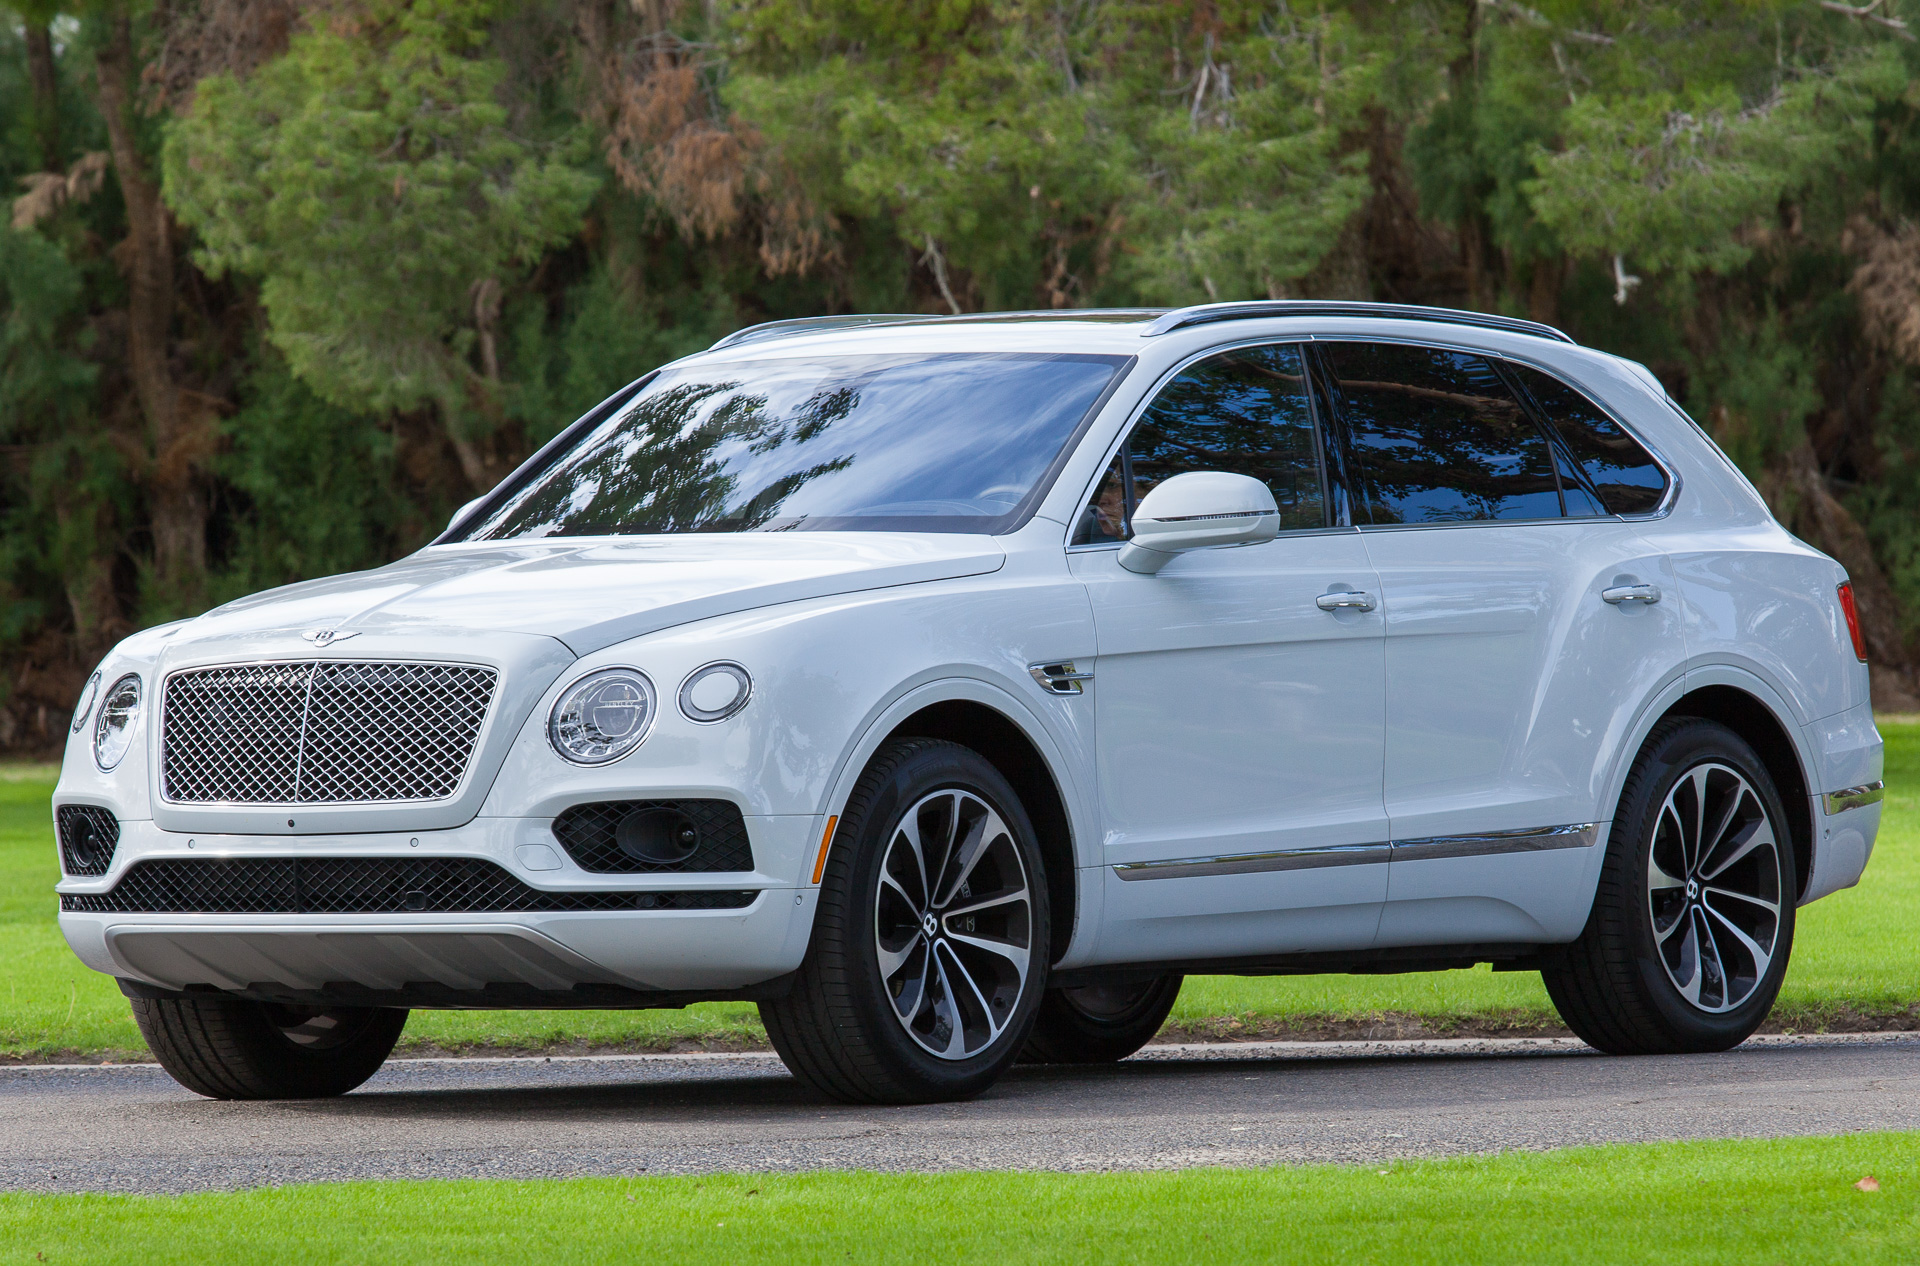 2018 Trackhawk Jeep >> Bentley: What's new for 2017